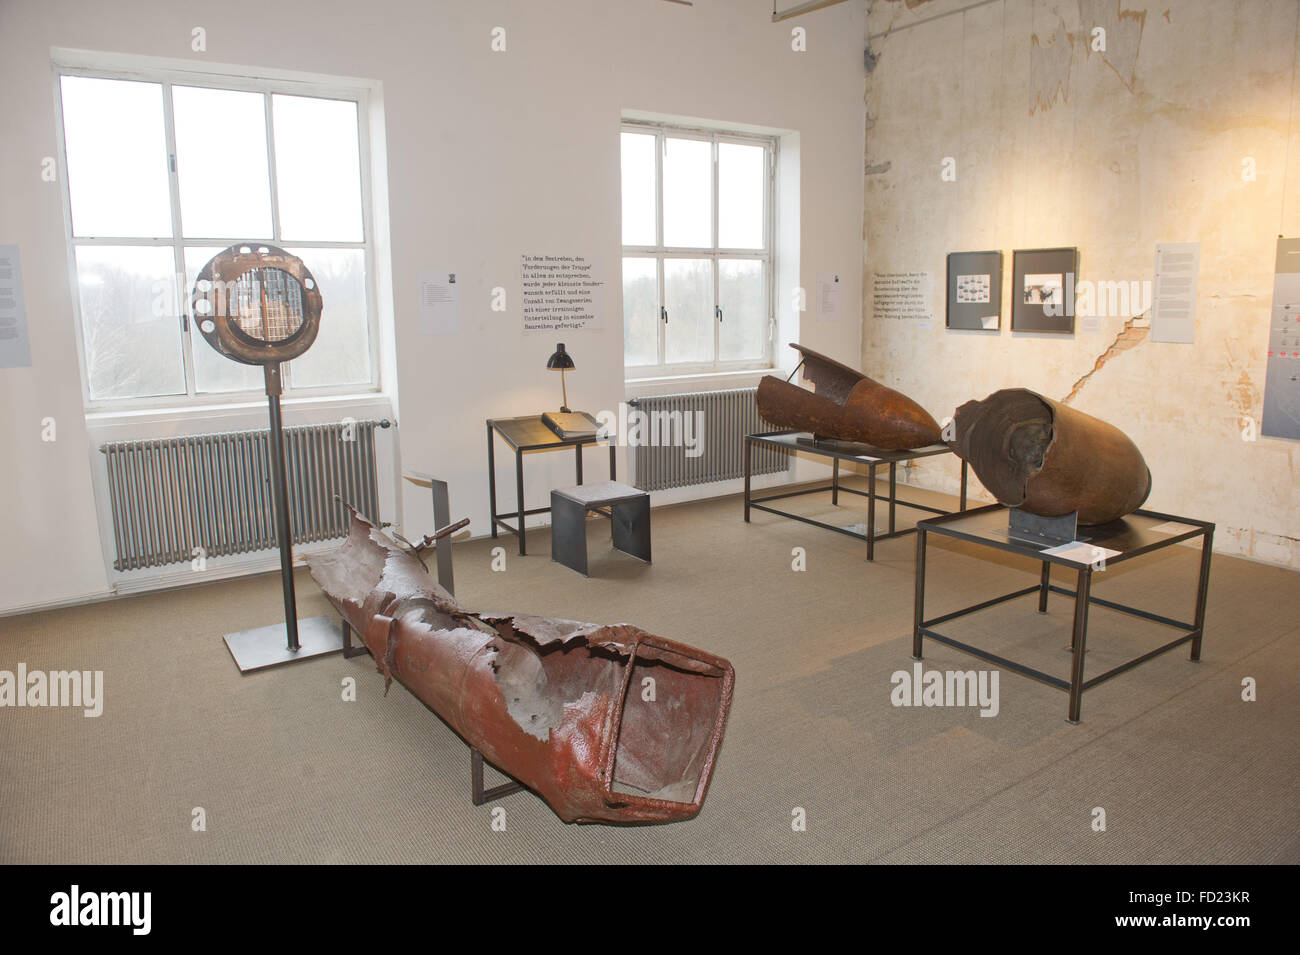 A view of the special exhibition being thrown by the Peenemuende Historical Technical museum, 'Wunder mit Kalkuel' - Stock Image